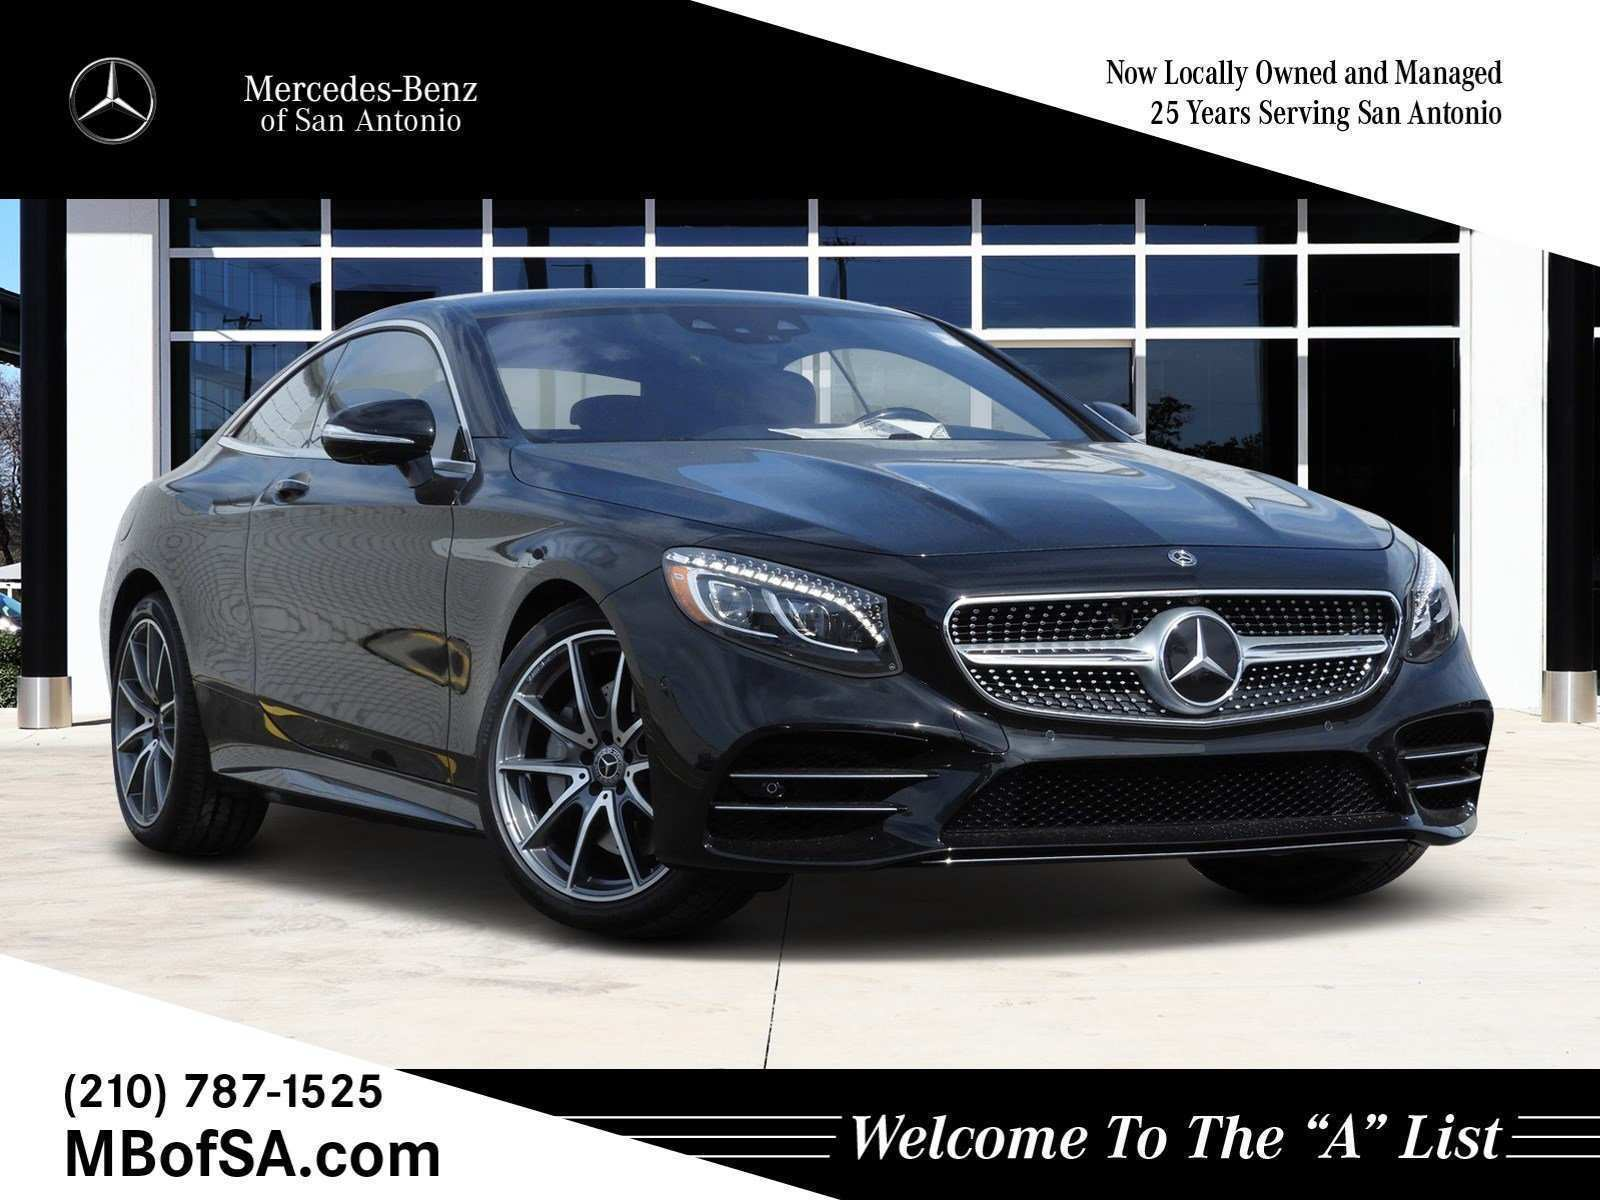 67 The Best 2019 Mercedes Benz S Class Redesign And Review